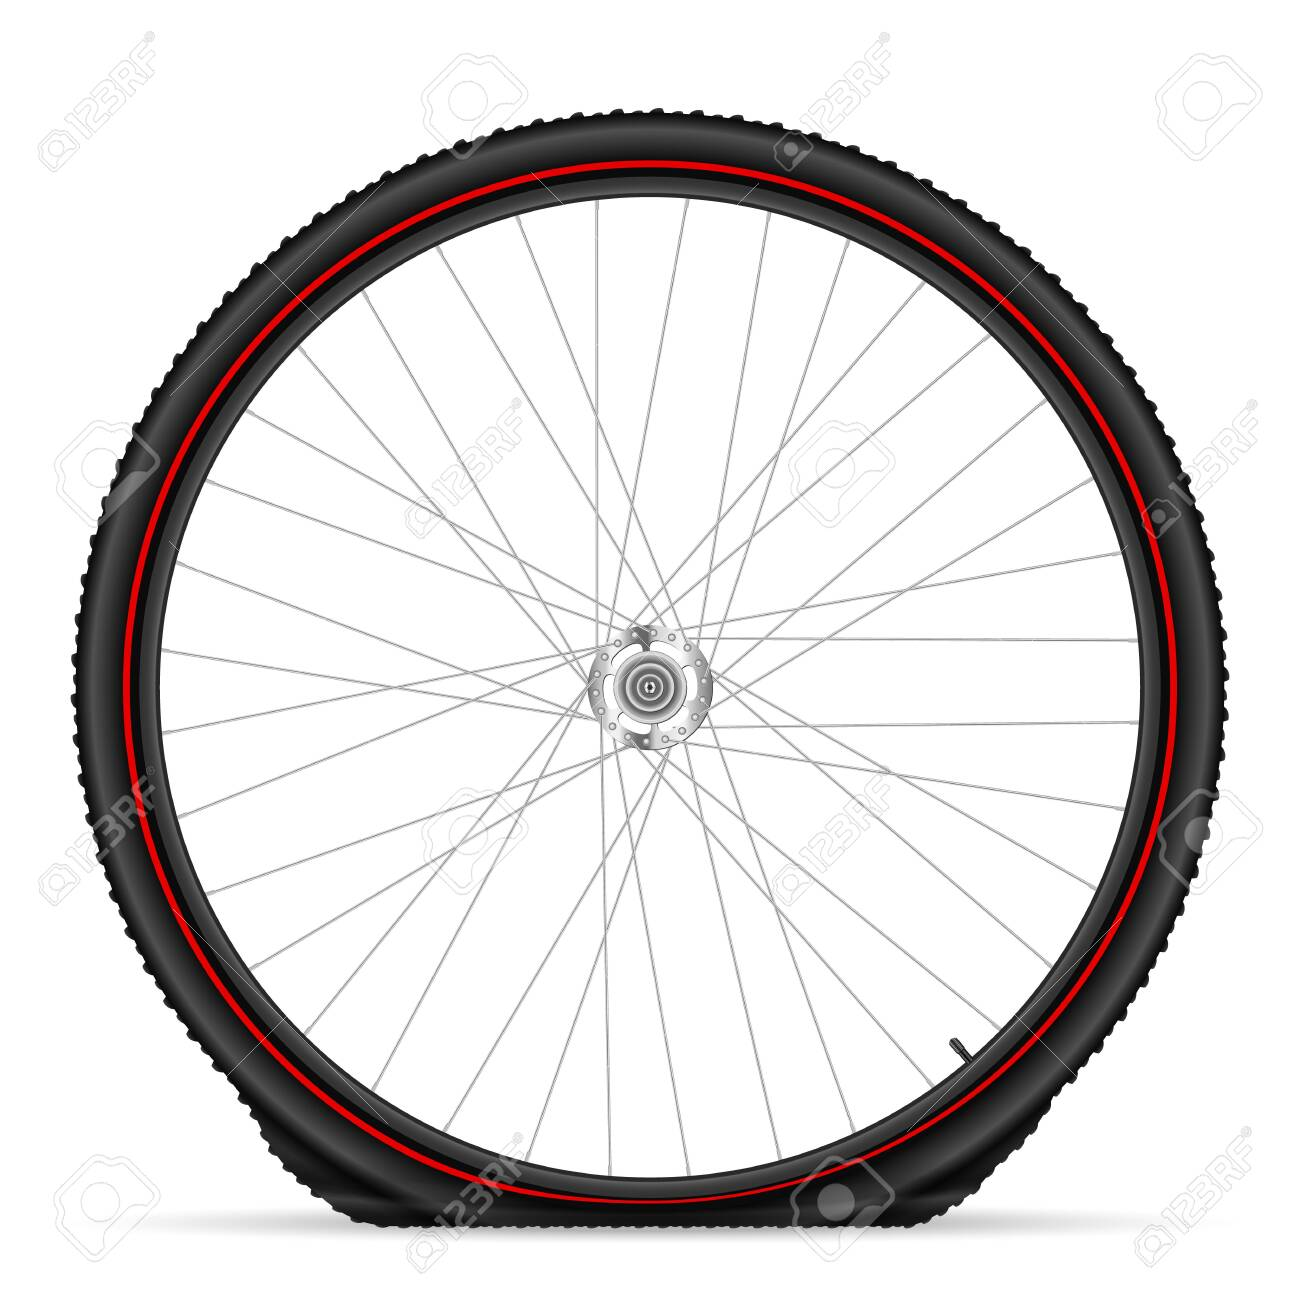 Flat bike tire on a white background. Vector illustration. - 150217756